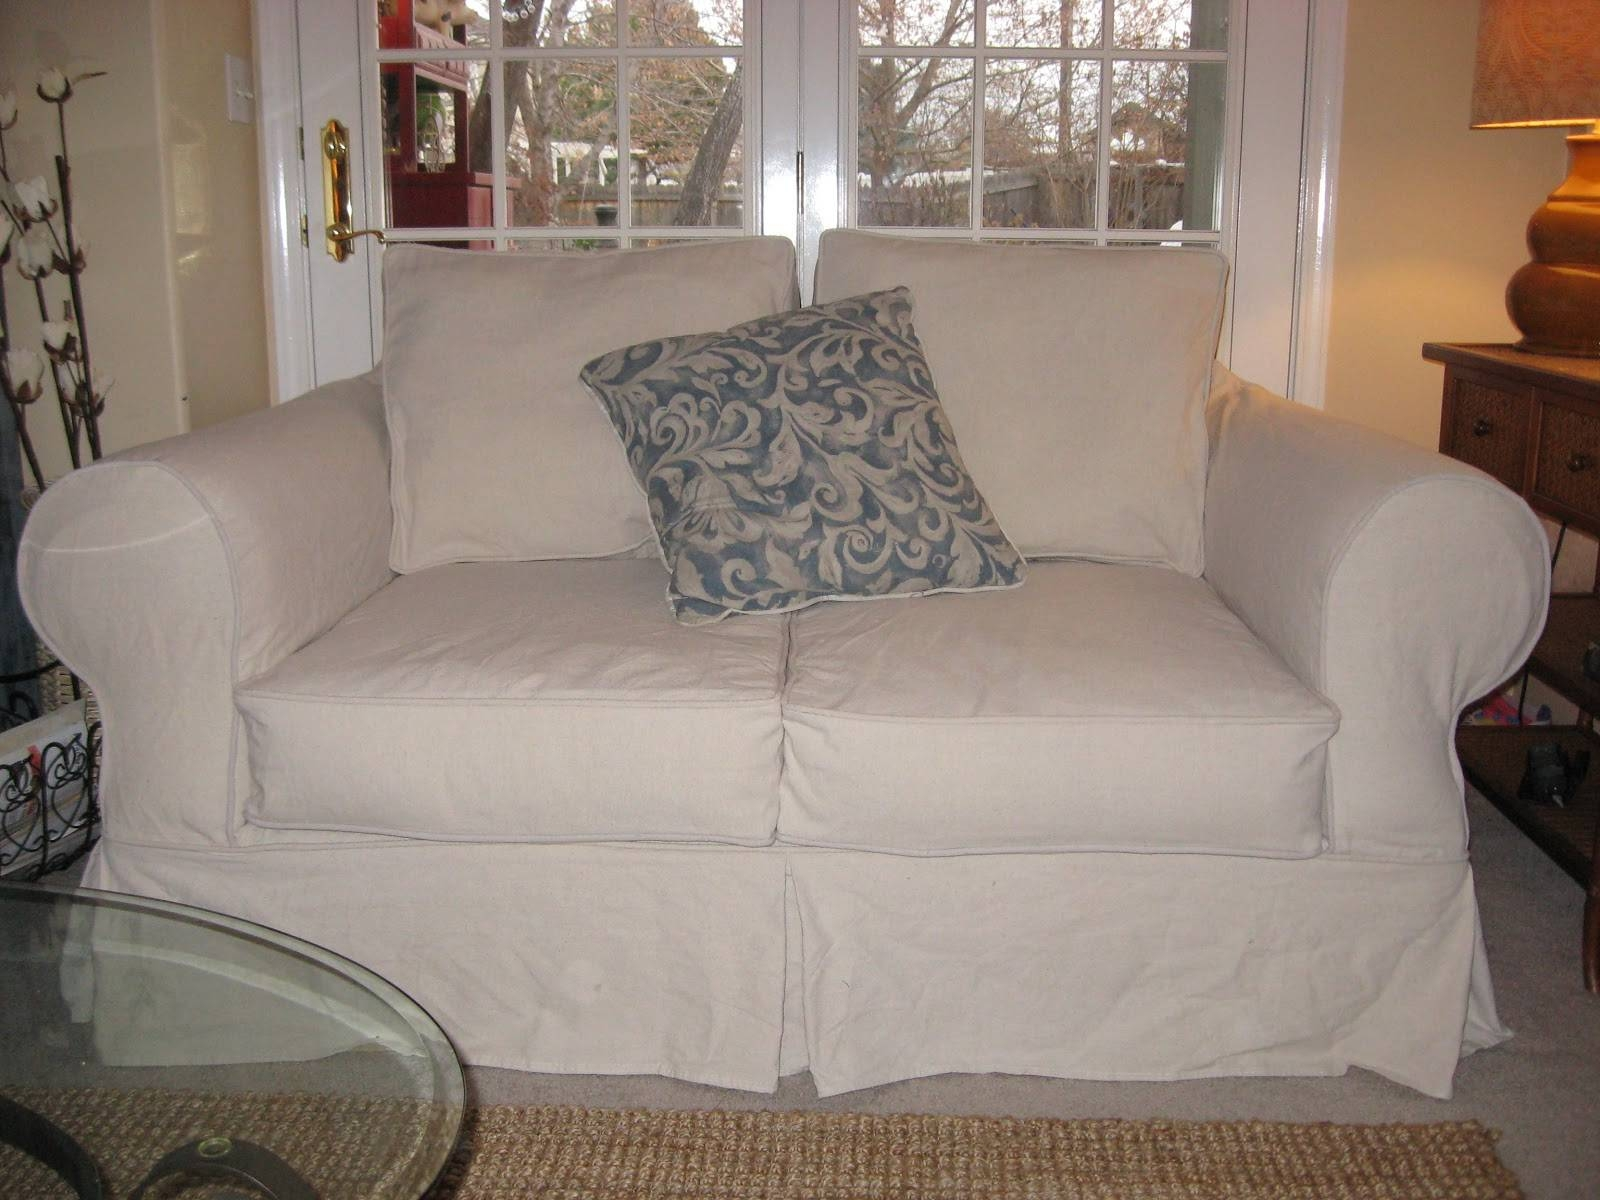 Furniture: Couch Covers At Walmart To Make Your Furniture Stylish for Slipcovers for Chairs and Sofas (Image 6 of 15)